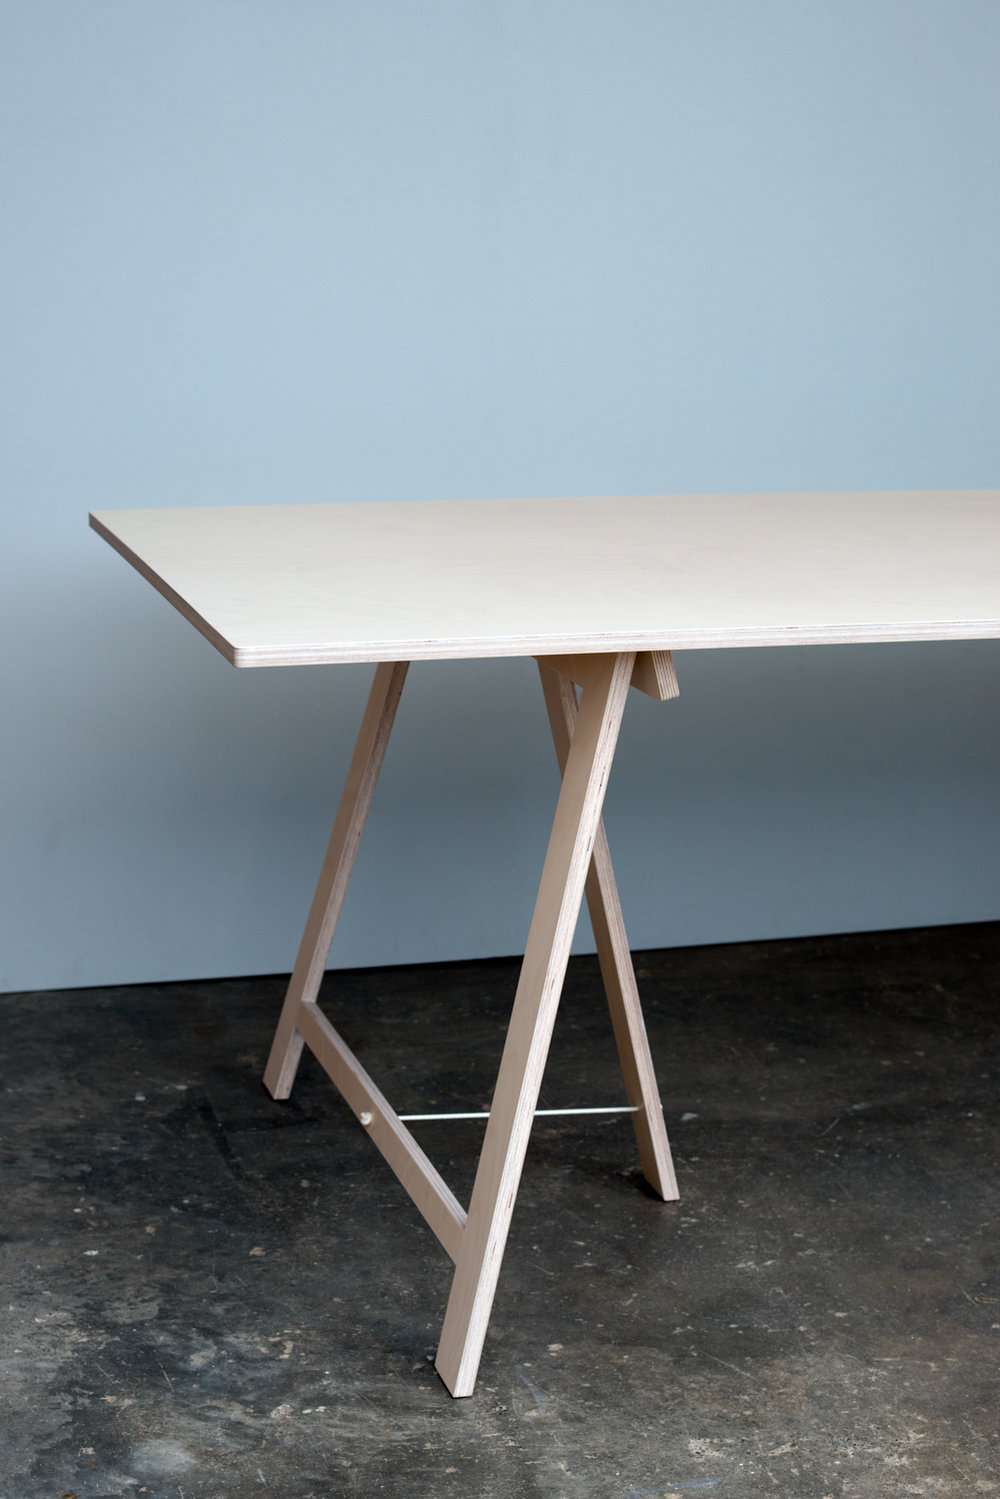 Sonja Read Photography-the new design of trestle table with three legs for extra leg room-3.jpg